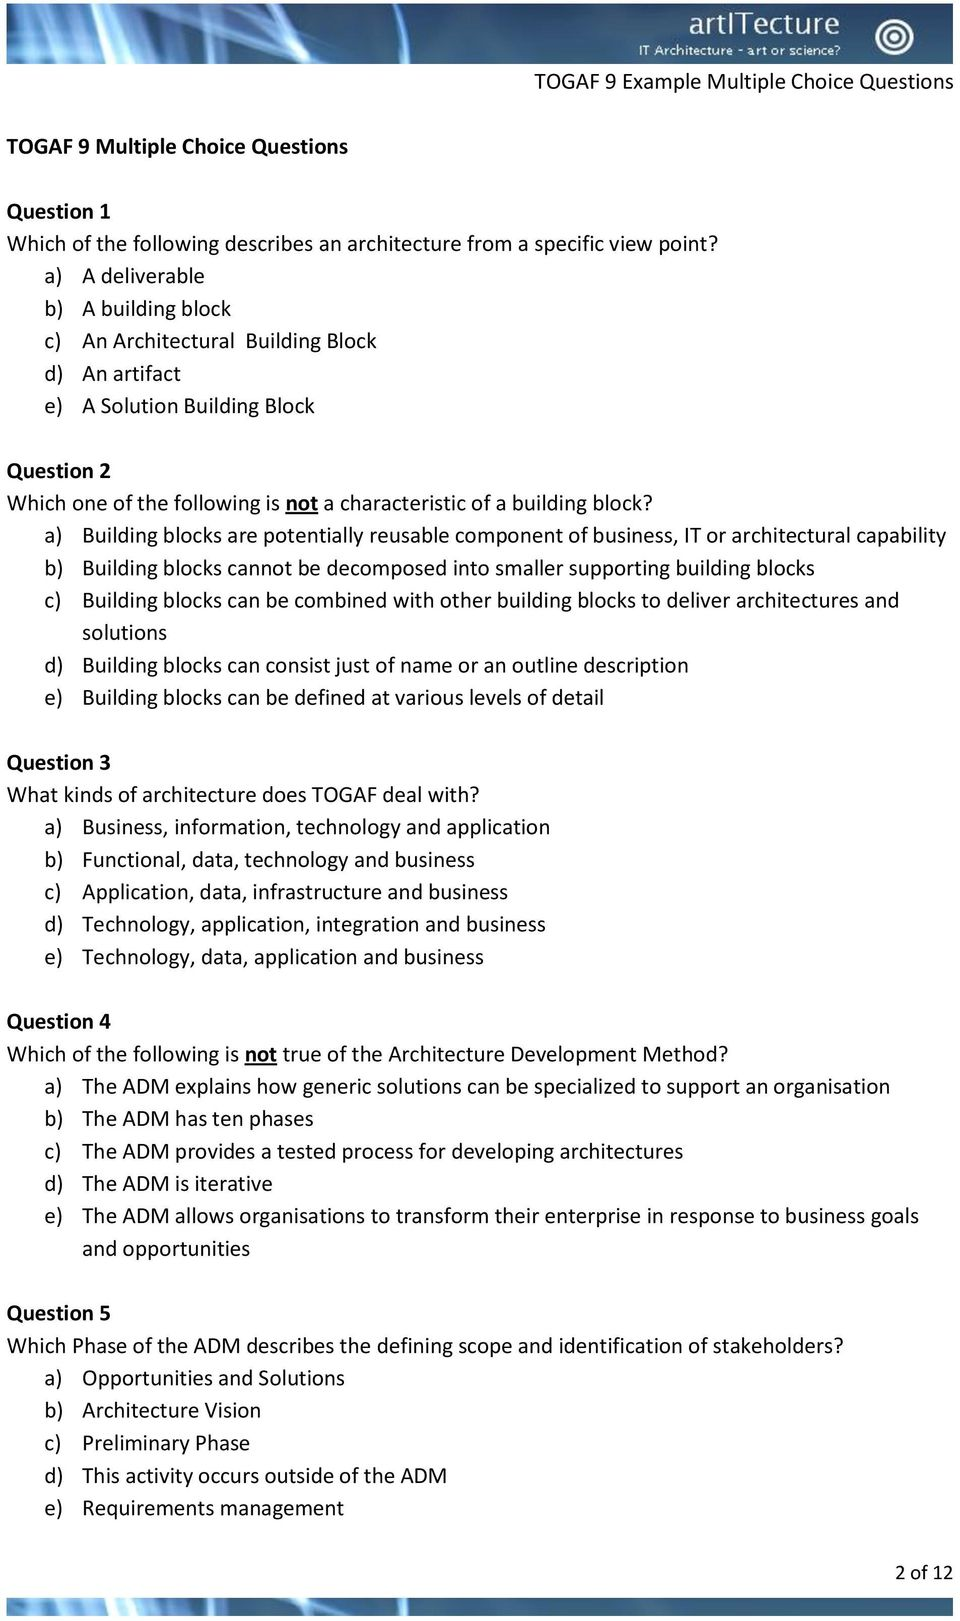 The multiple choice questions are part of the TOGAF 9